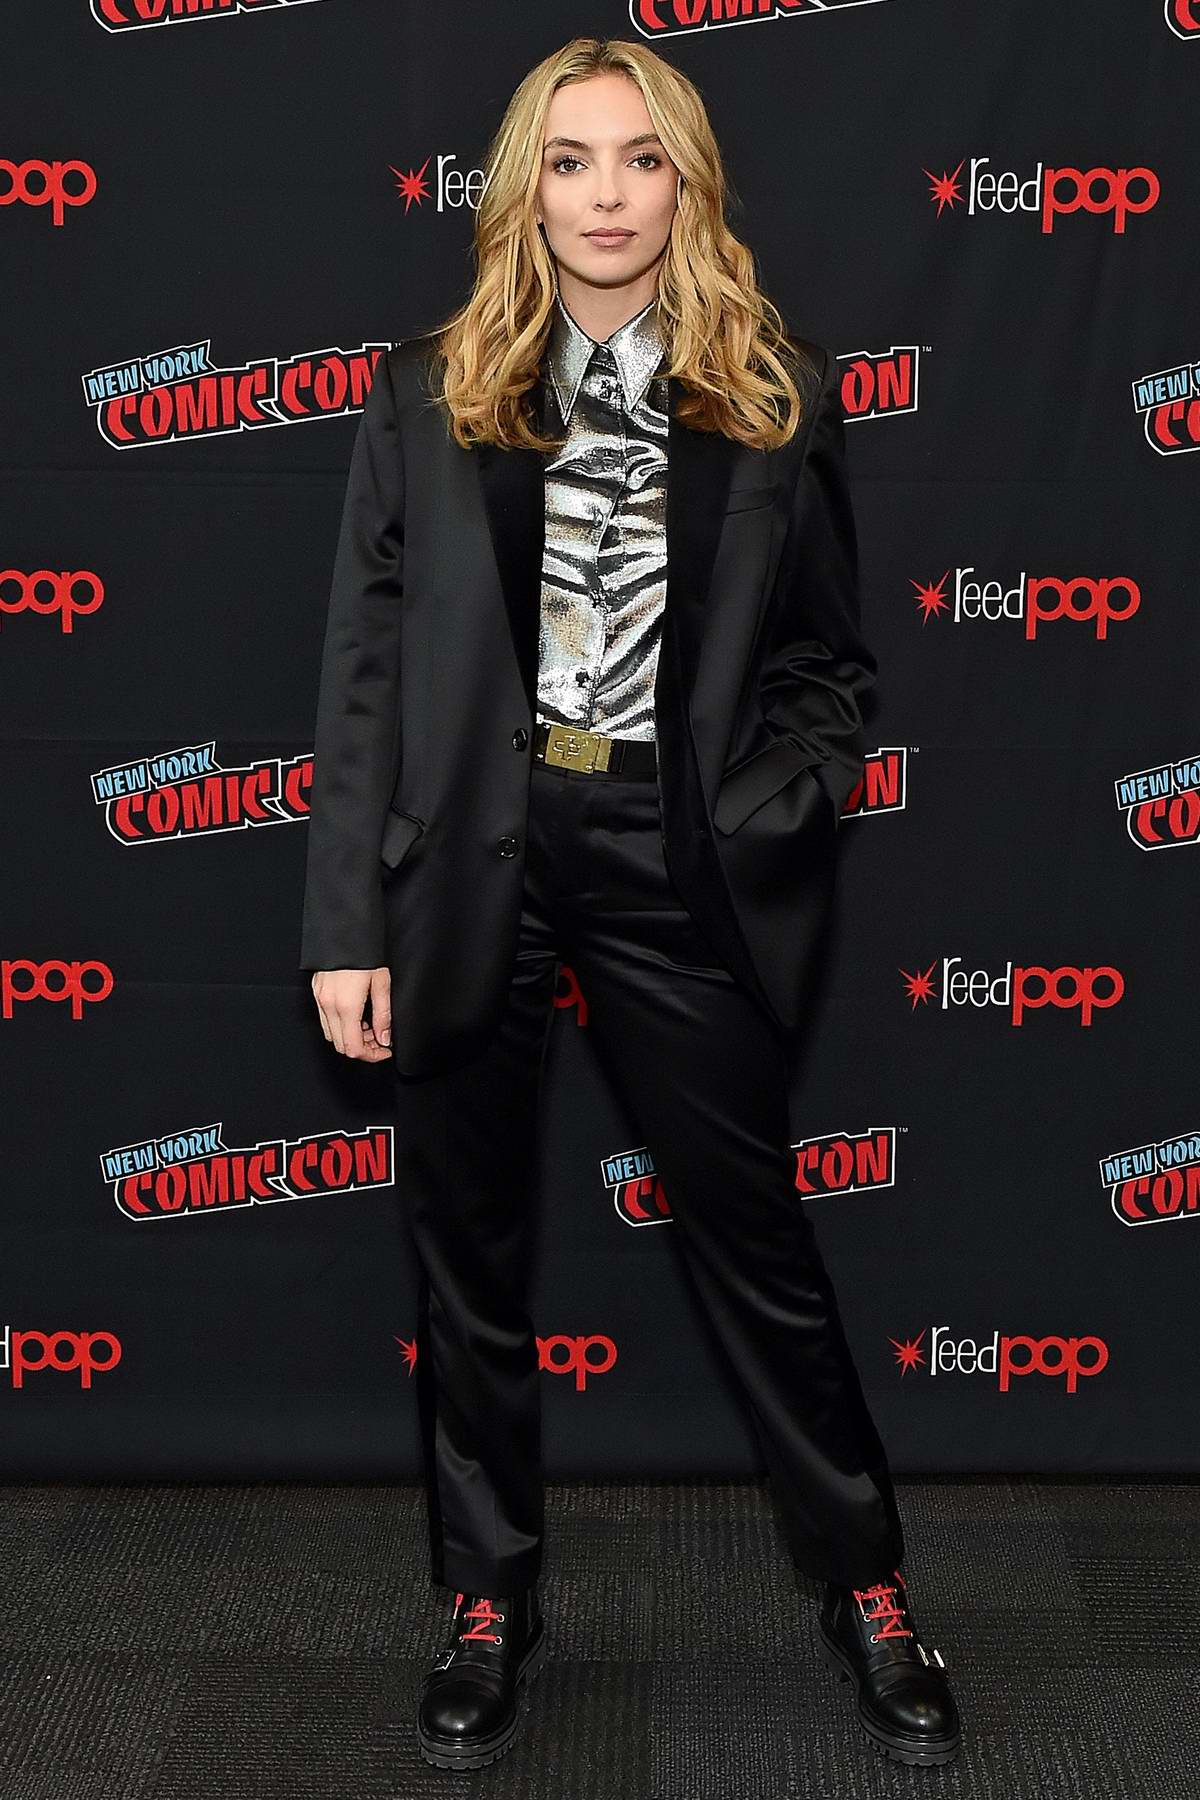 Jodie Comer attends 'Free Guy' panel during 2019 New York Comic Con in New York City